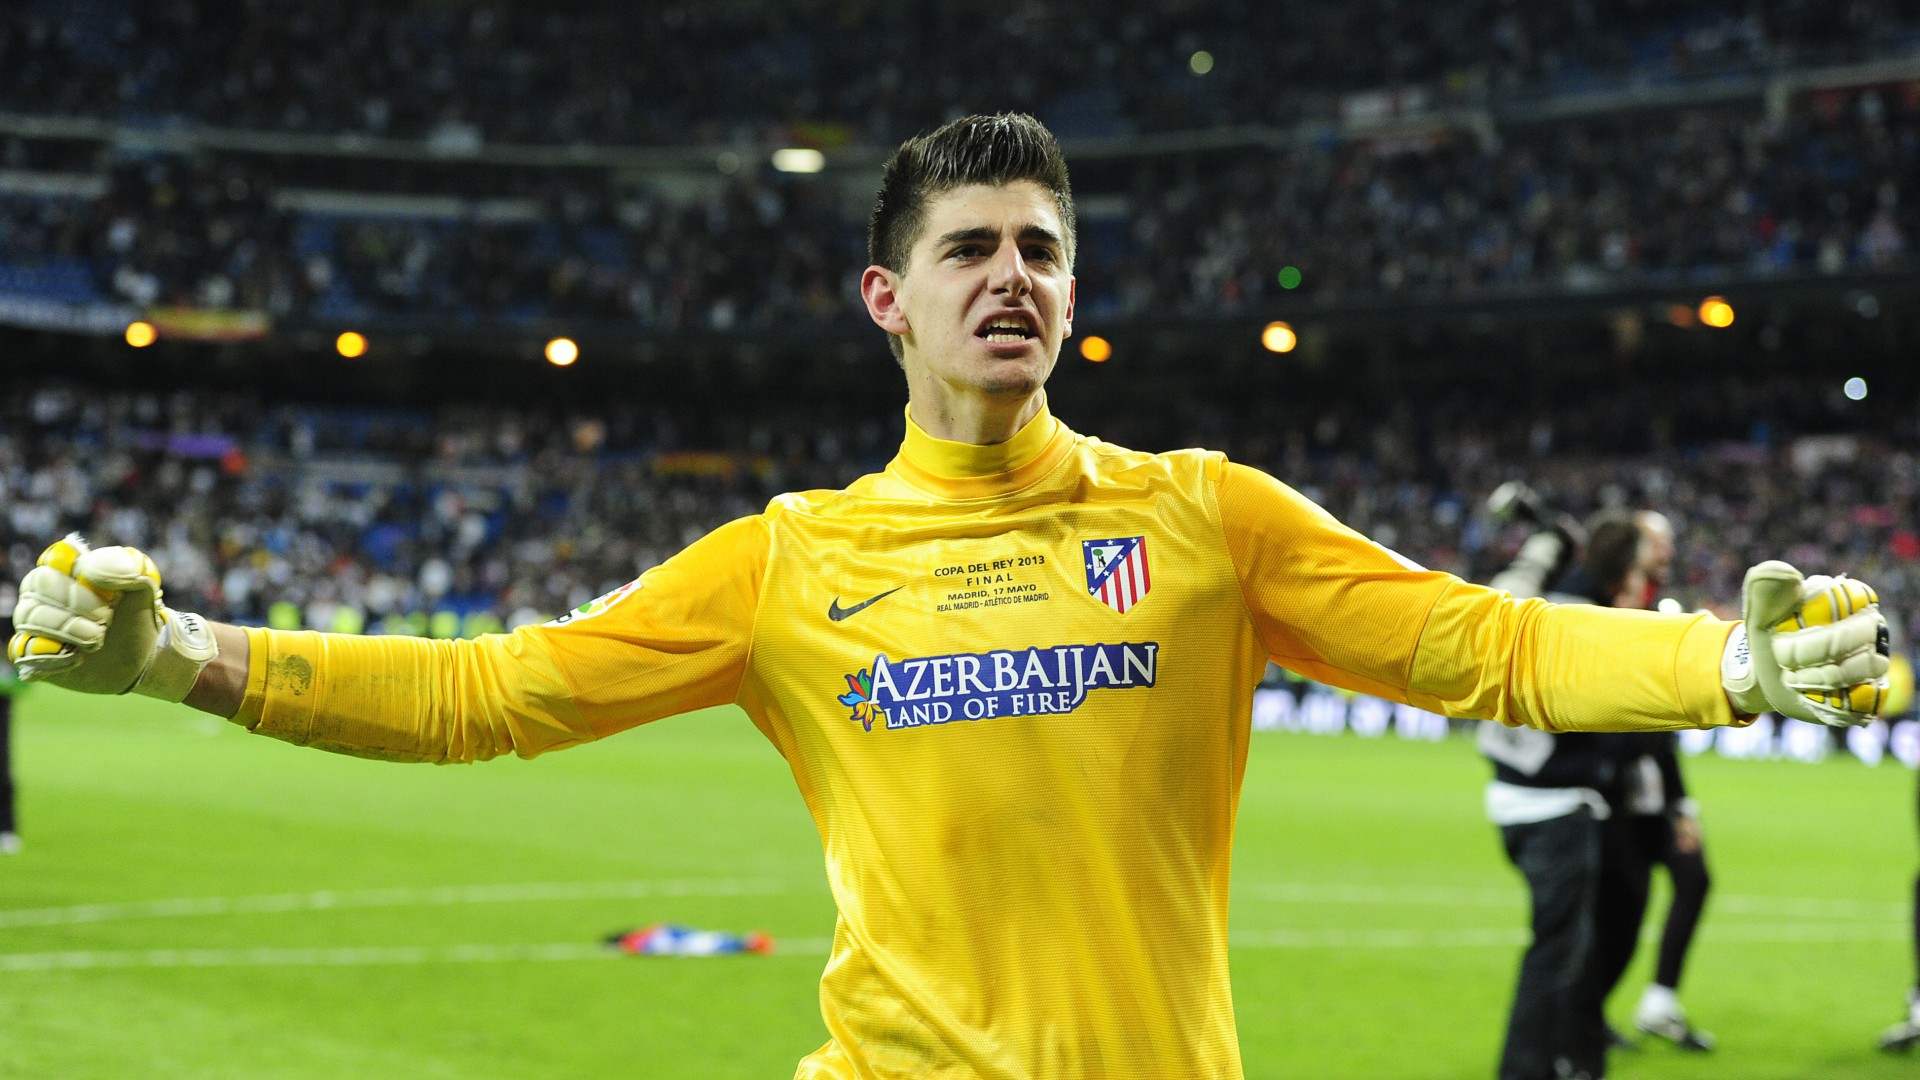 Football, Thibaut Courtois, soccer, The Best players 2015, Chelsea, Goalkeeper, footballer, Thibaut Nicolas Marc Courtois (horizontal)